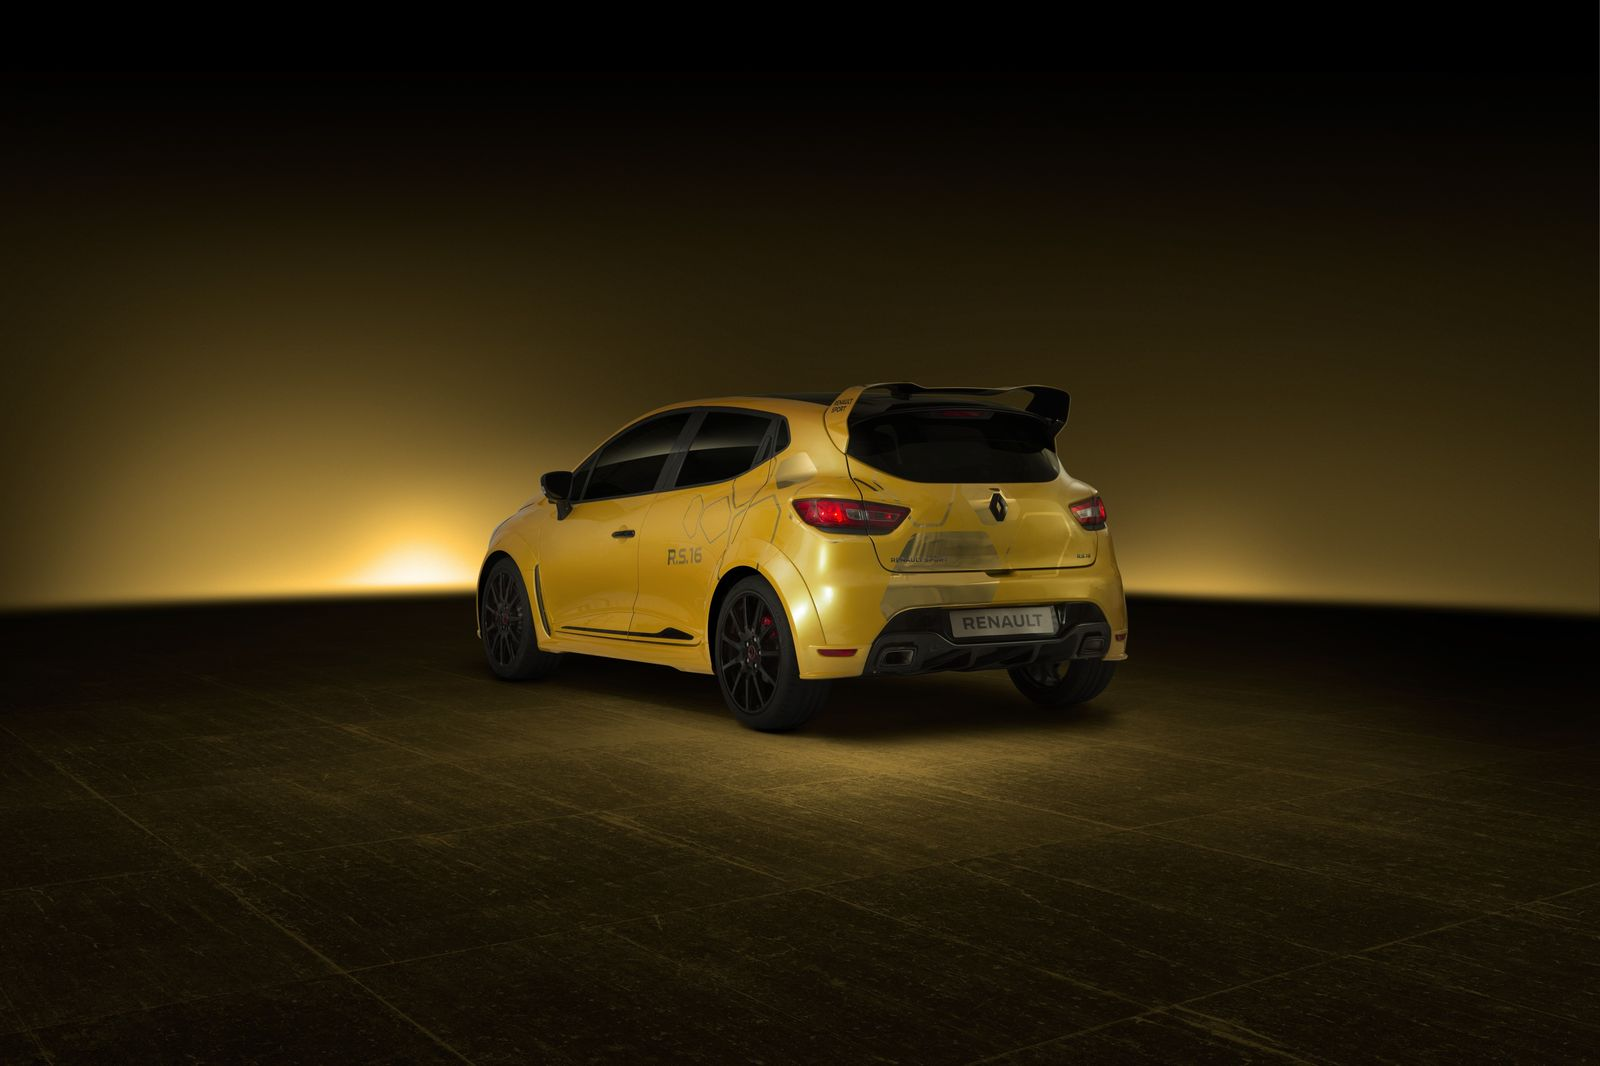 2019 Renault Clio RS Concept photo - 1